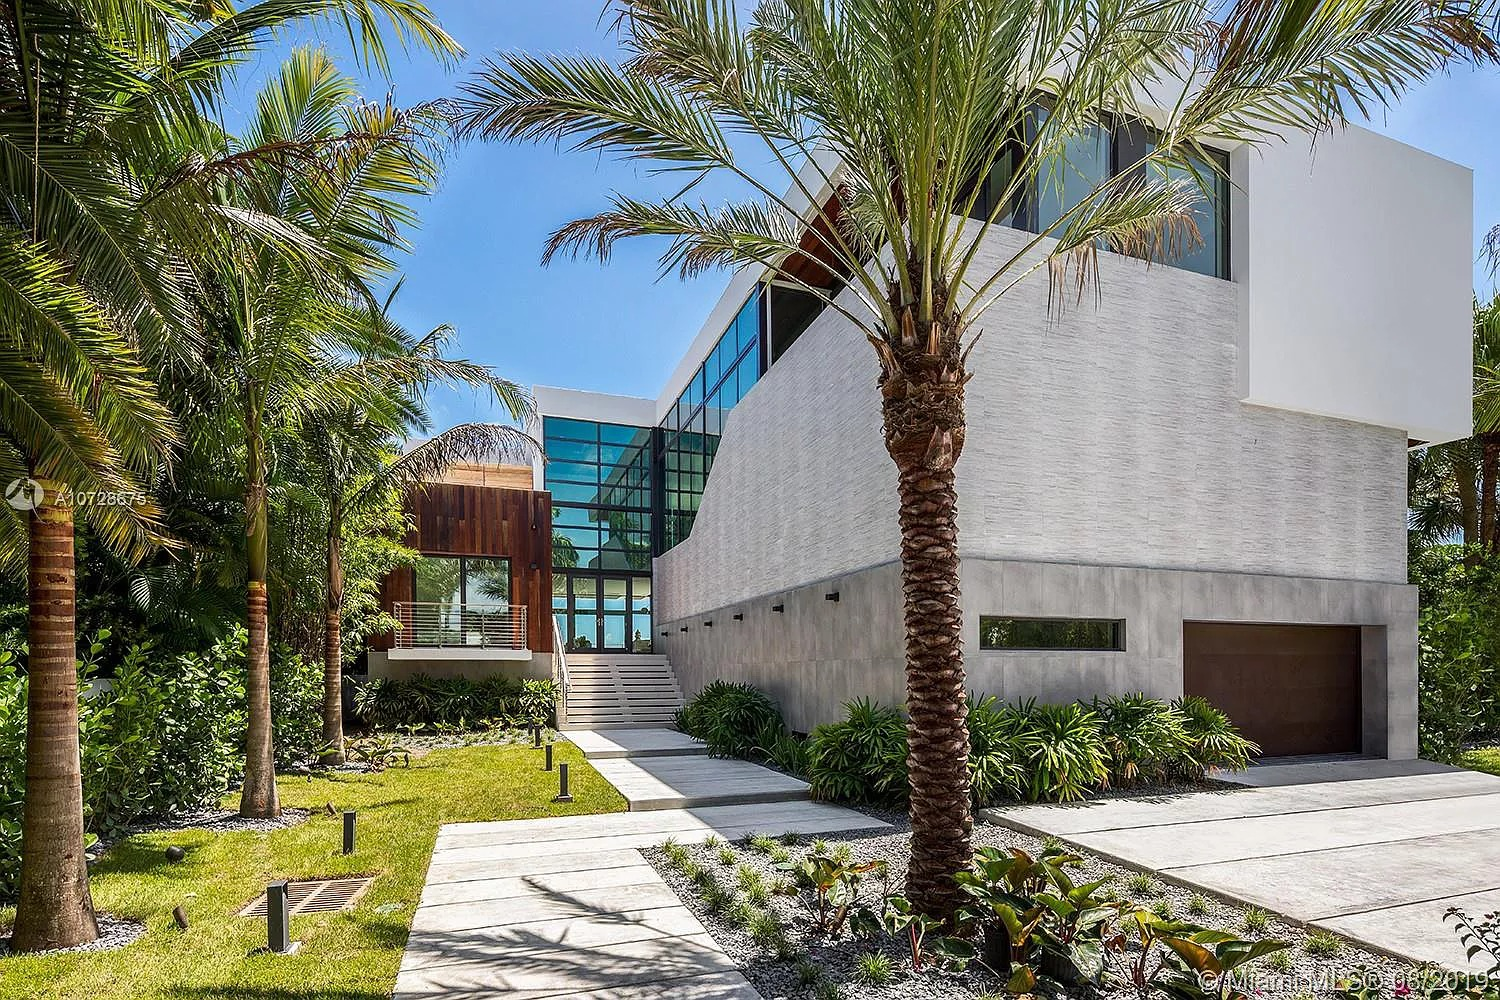 7311 Belle Meade Island Dr, Miami, FL 33138 - $7,850,000 home for sale, house images, photos and pics gallery